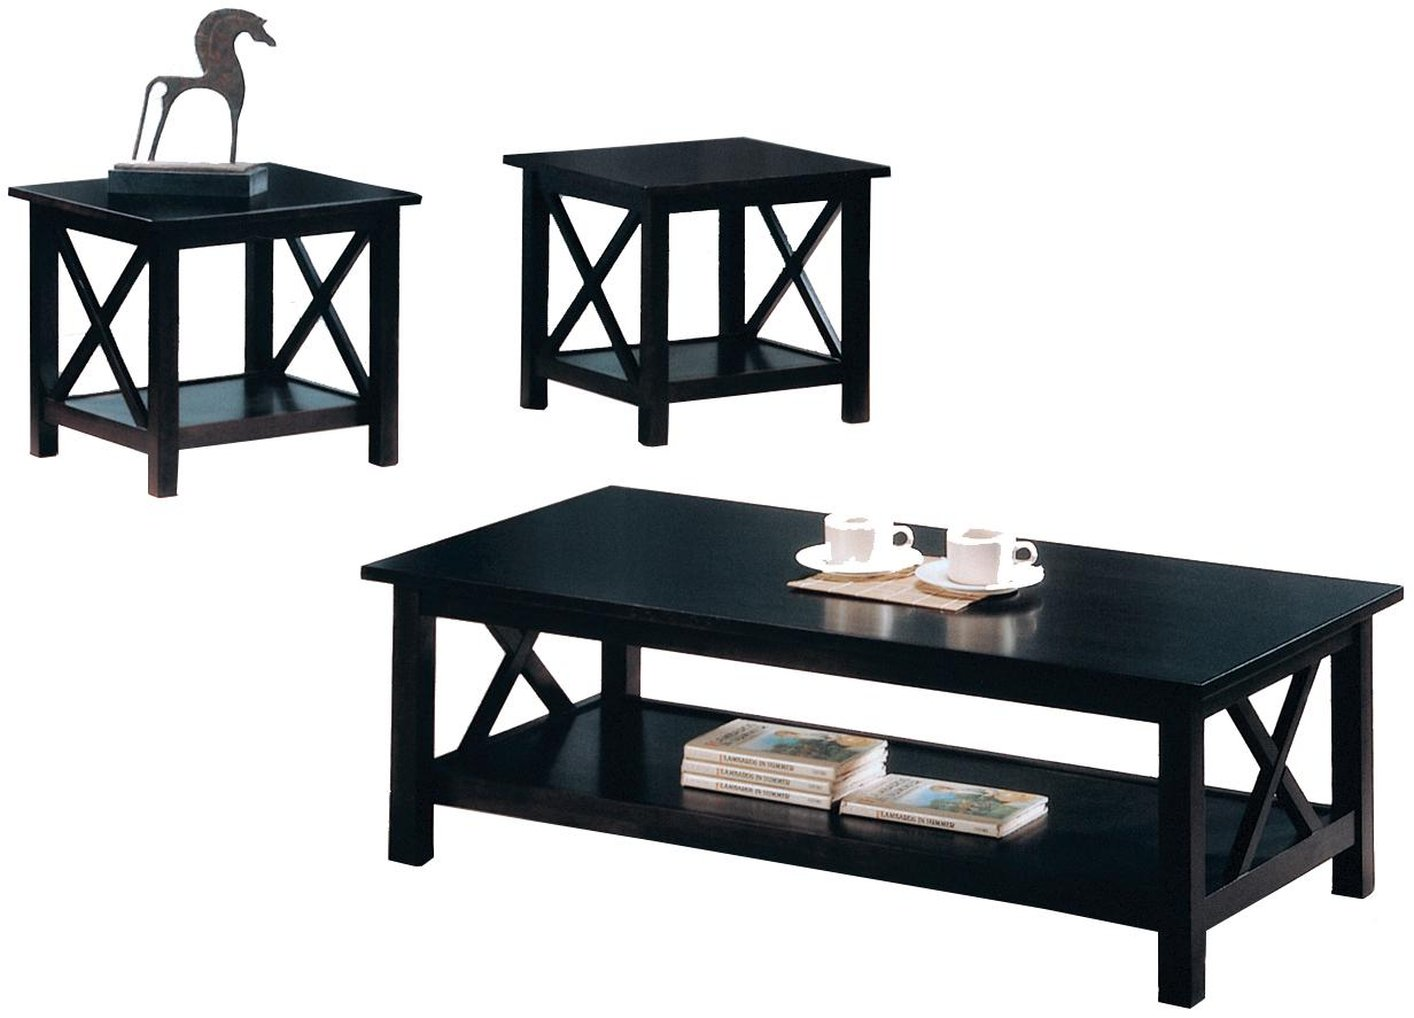 black wood coffee table set steal sofa furniture los and end tables angeles glass iron side wooden ikea tetra loveseat large blue dog crate friday medium oak recycled ashley hogan